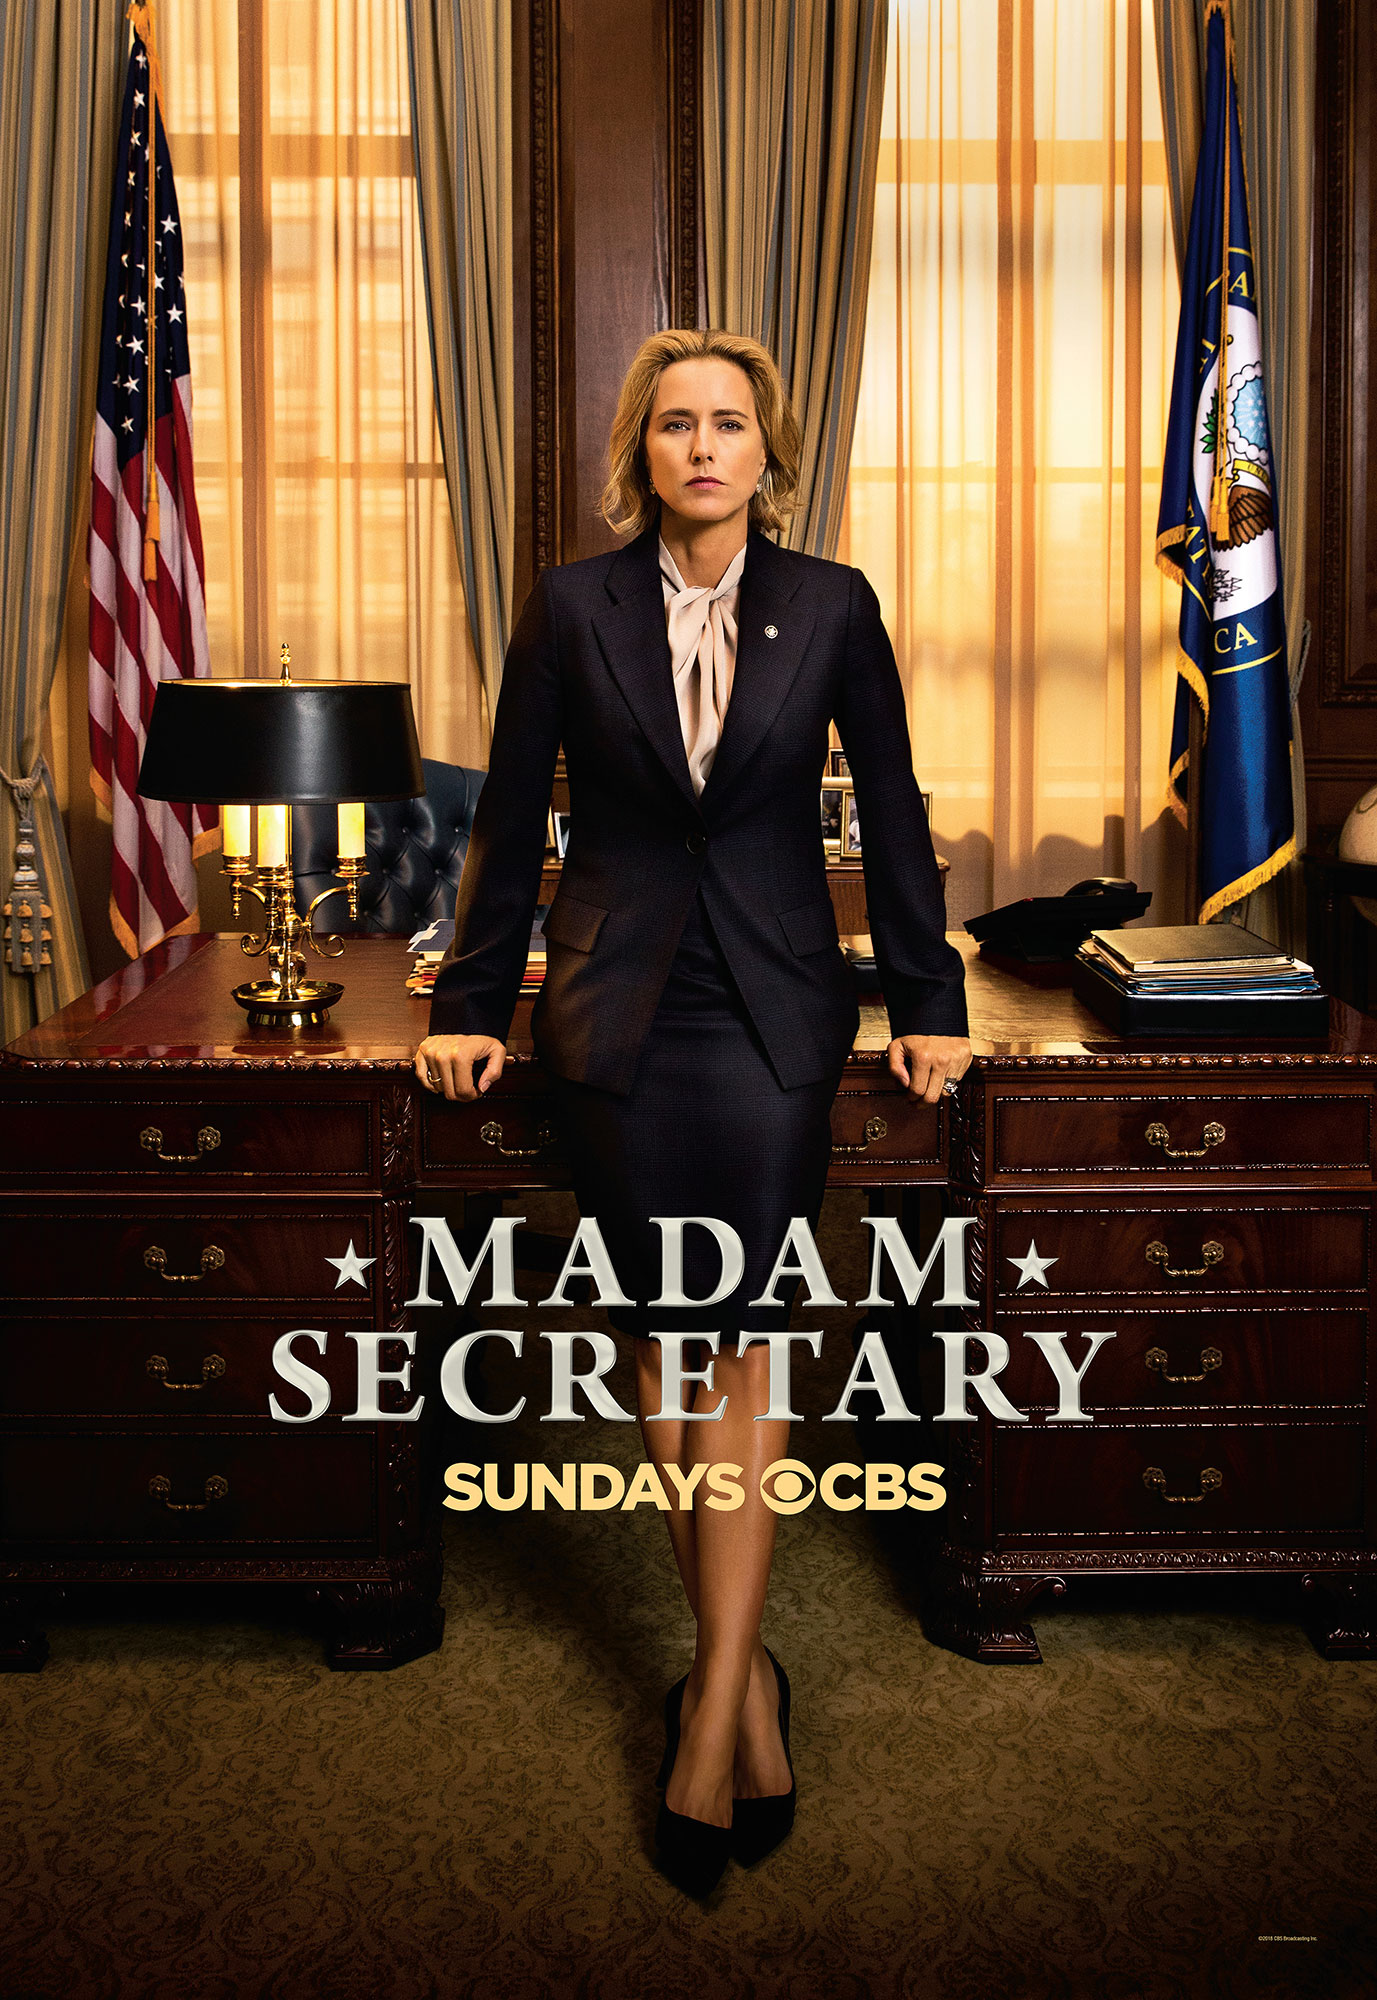 Téa Leoni as Madam Secretary | CBS